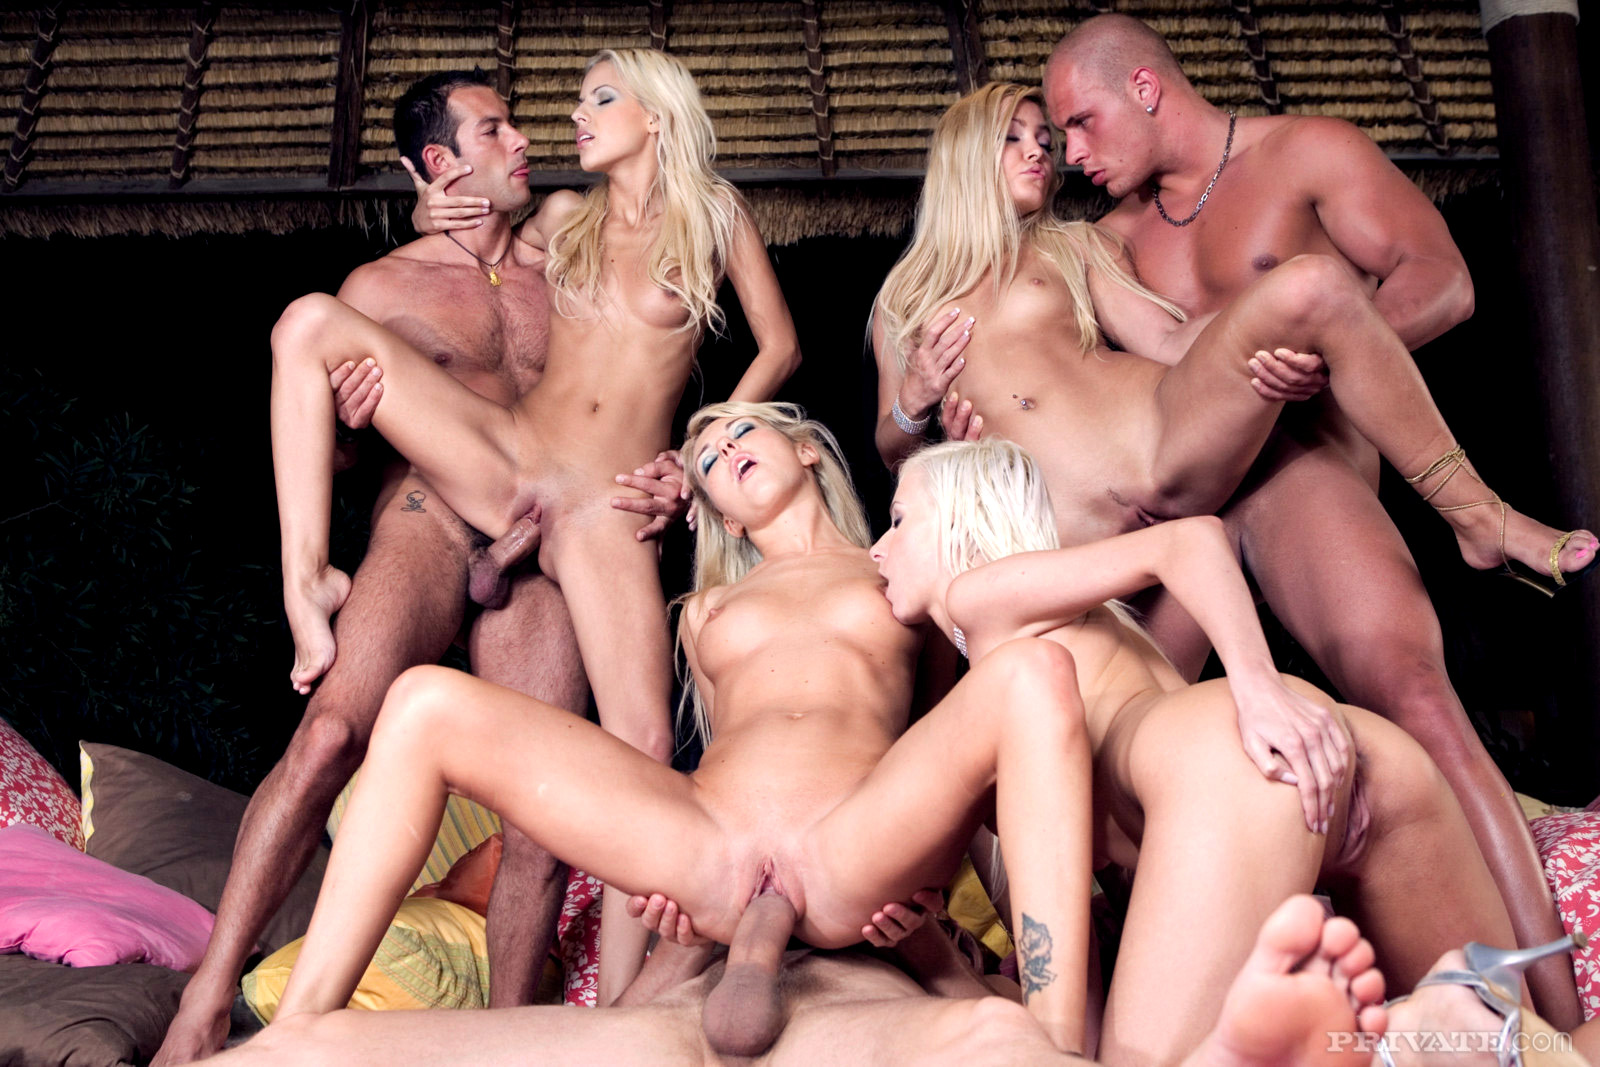 Paris girl fucking picture, blond shemales posing